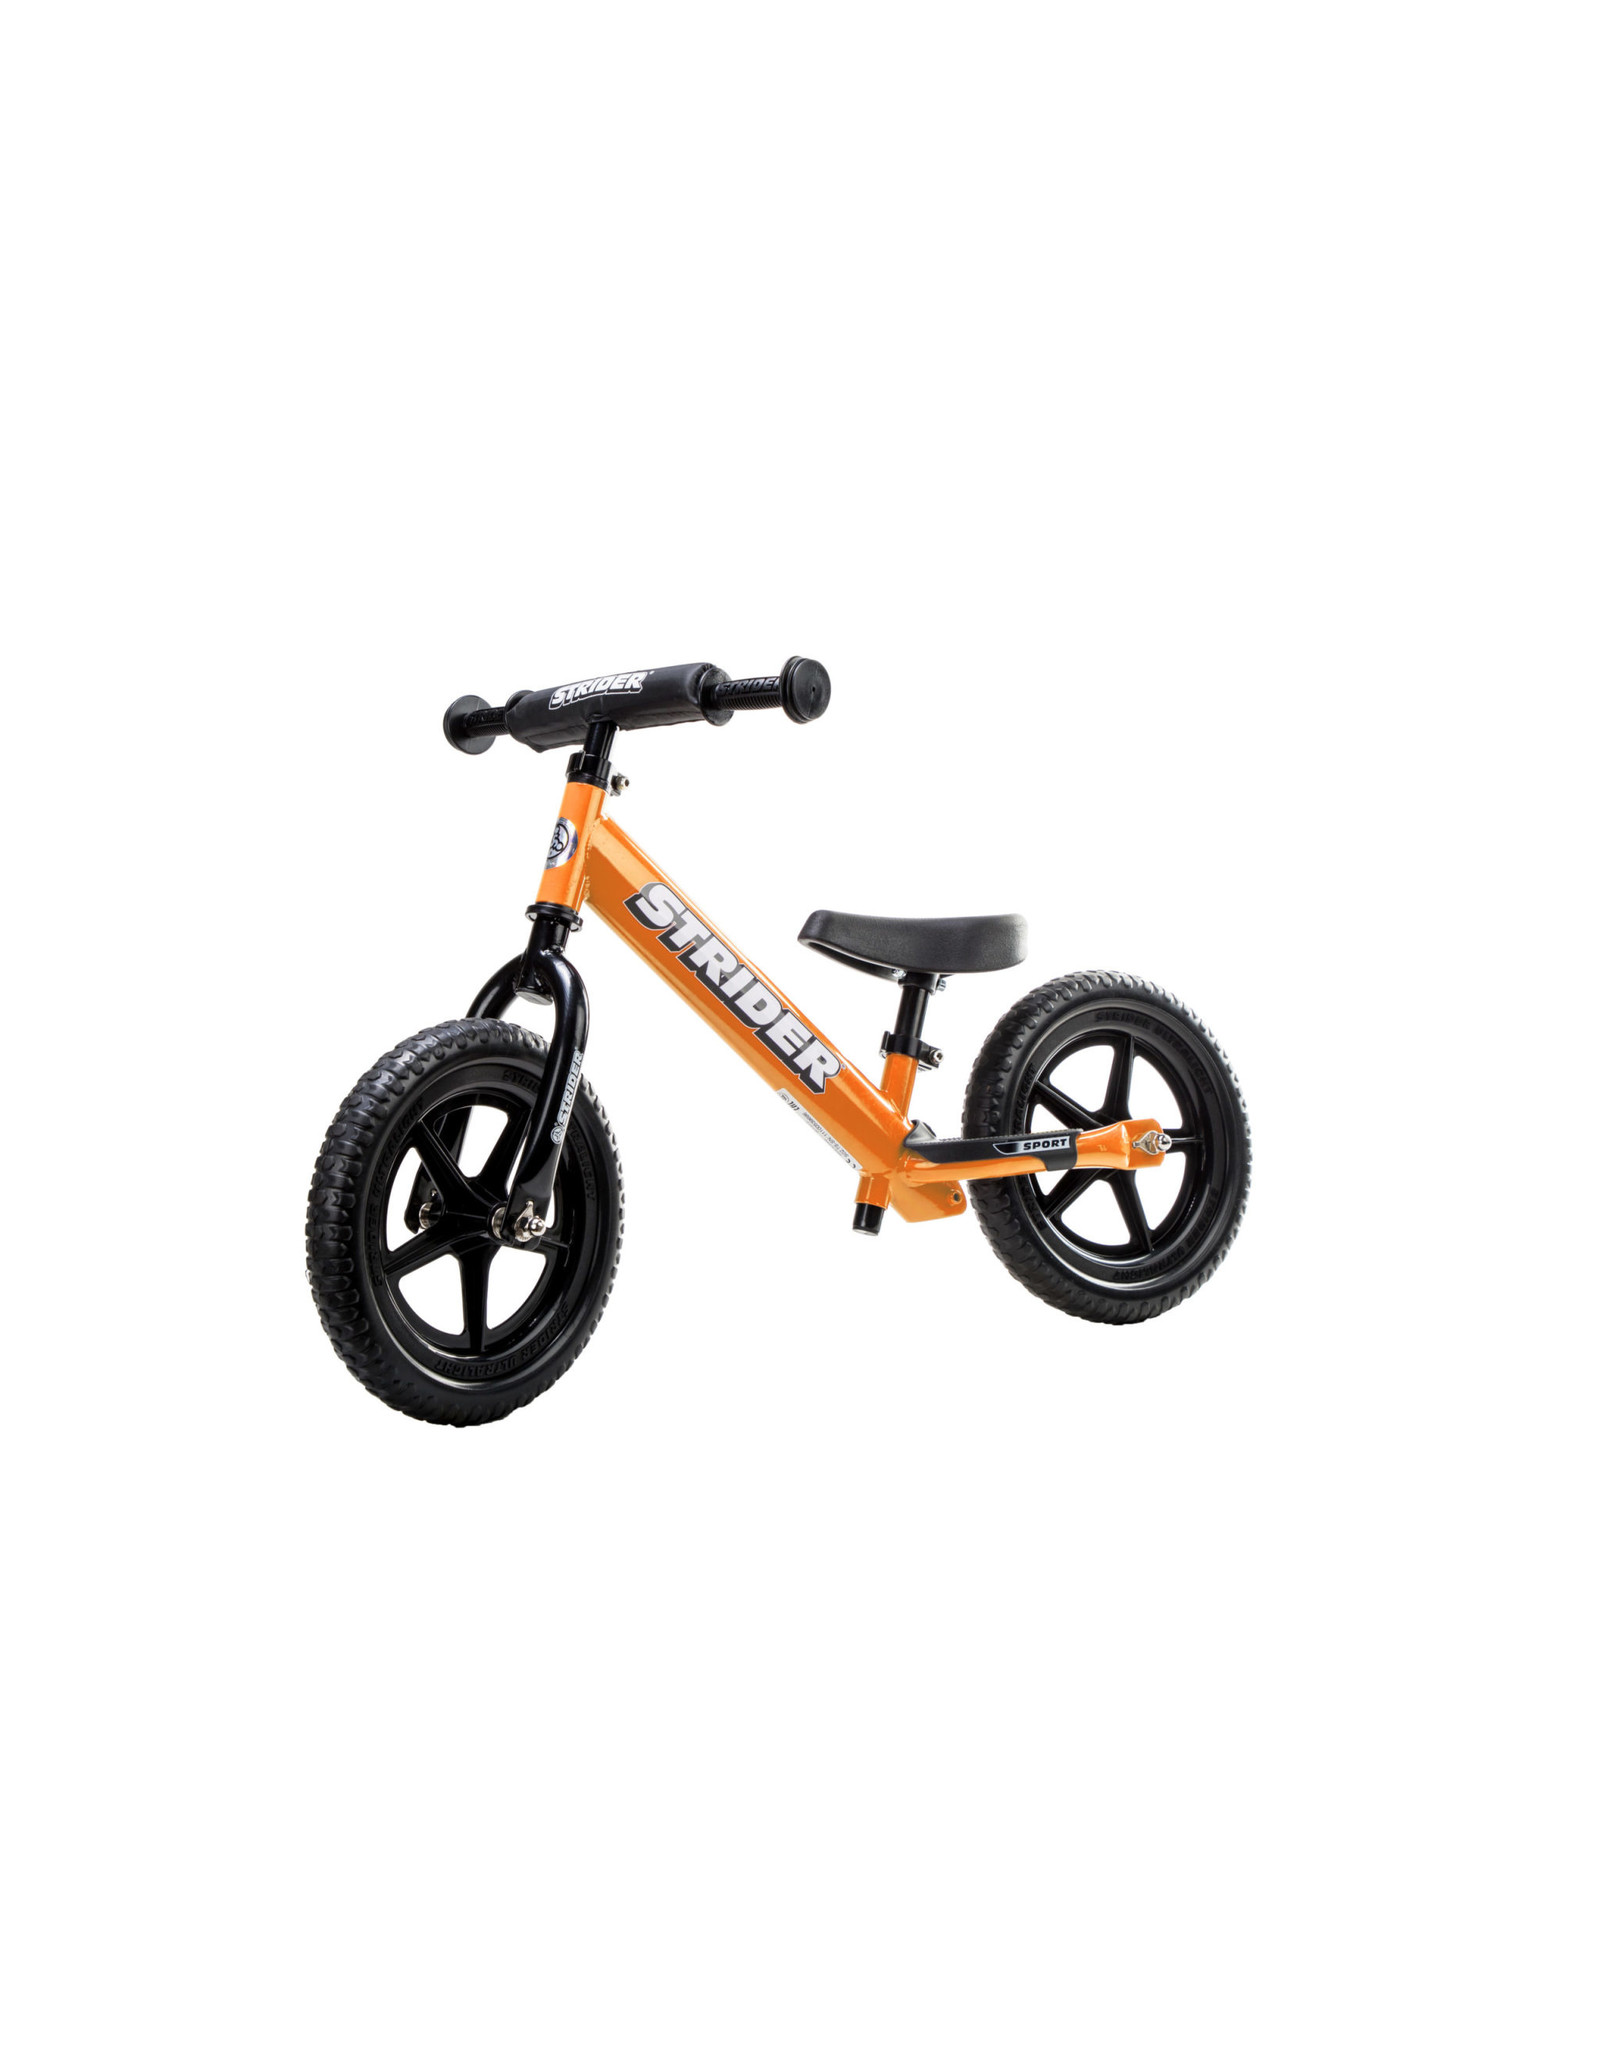 STRIDER Strider 12 Sport Balance Bike - Orange 18 months-5 Years